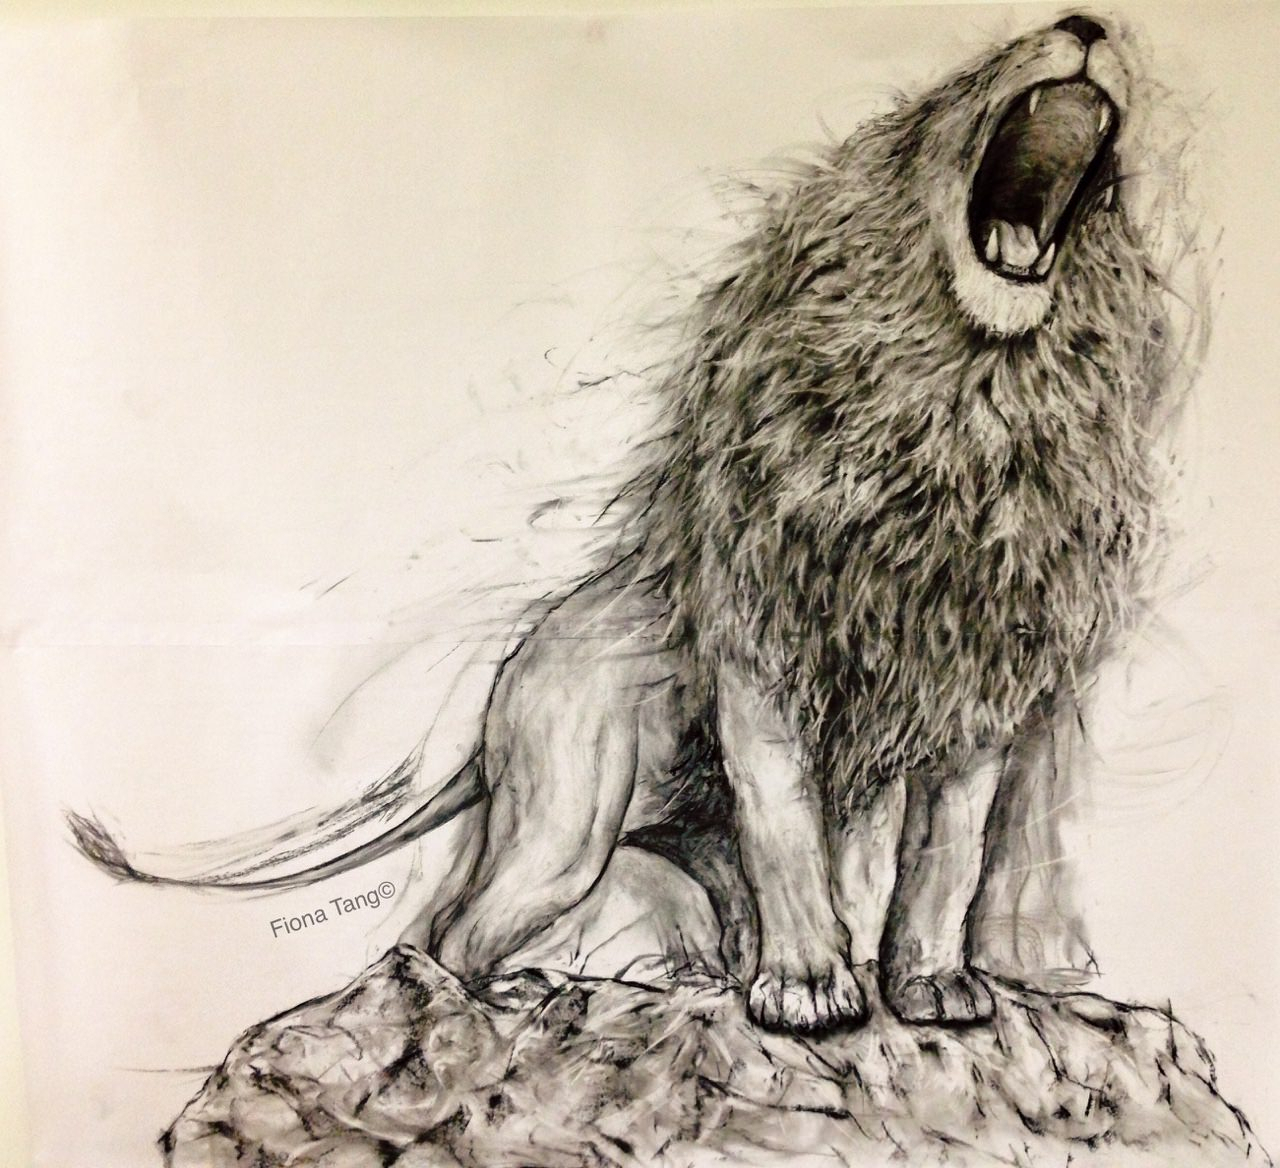 1280x1168 Pencil Sketch Of Roaring Lion Realistic Drawings Of Lions Roaring